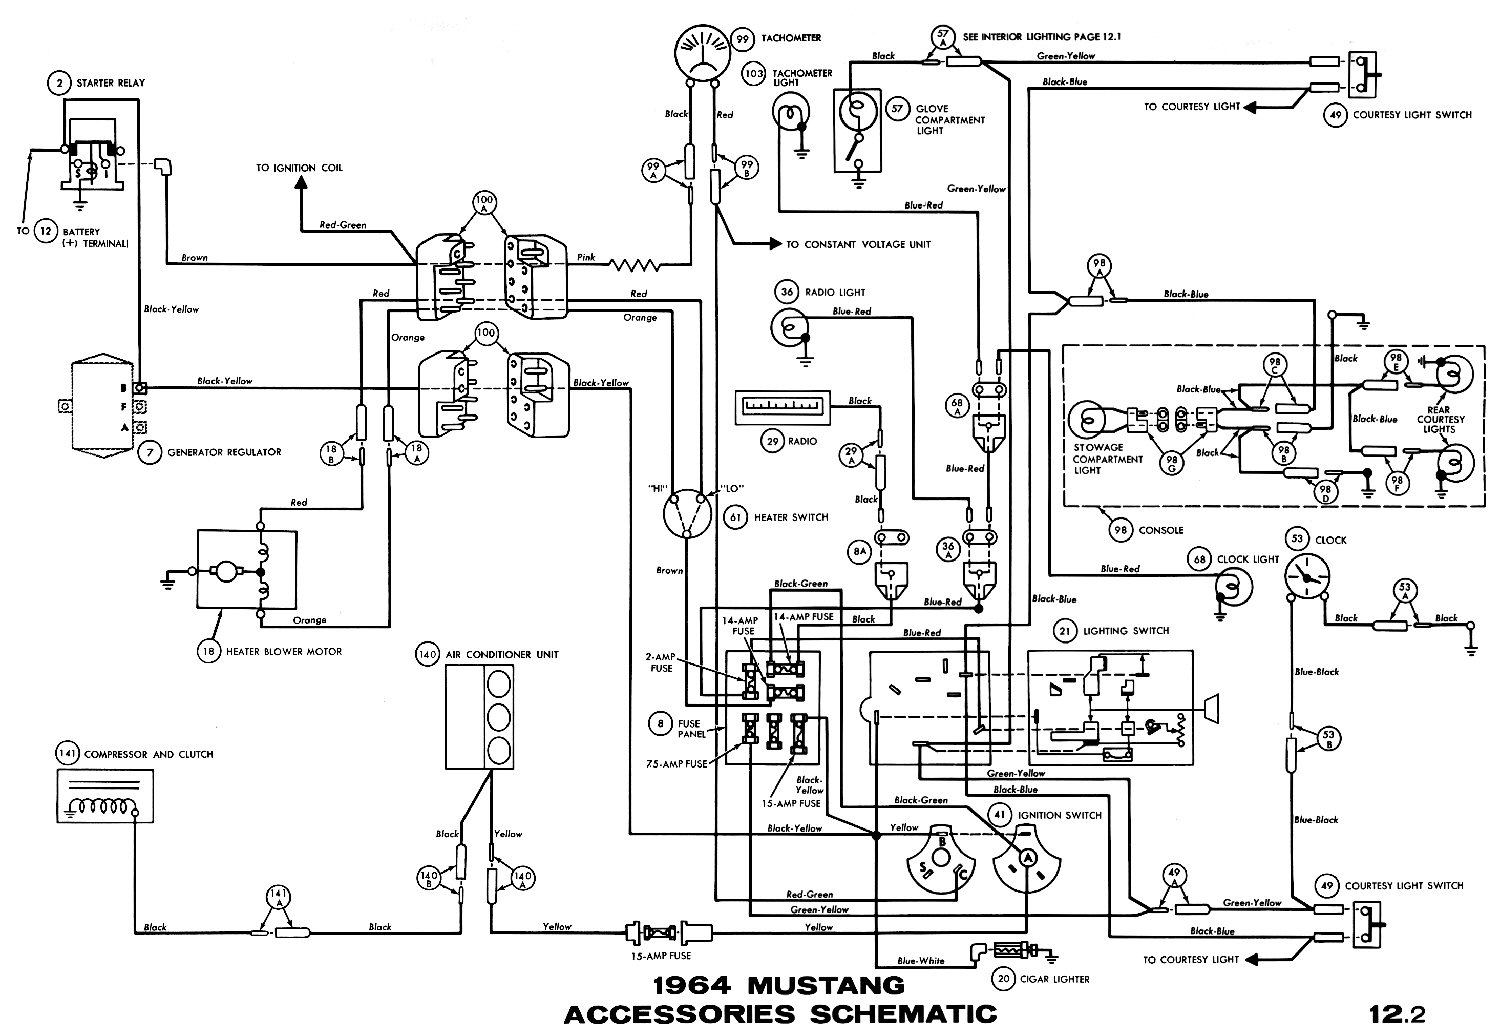 1971 Ford Mustang Flasher Wiring Diagram Ignition Diagrams On Basic Car Simple Race 1980 Radio